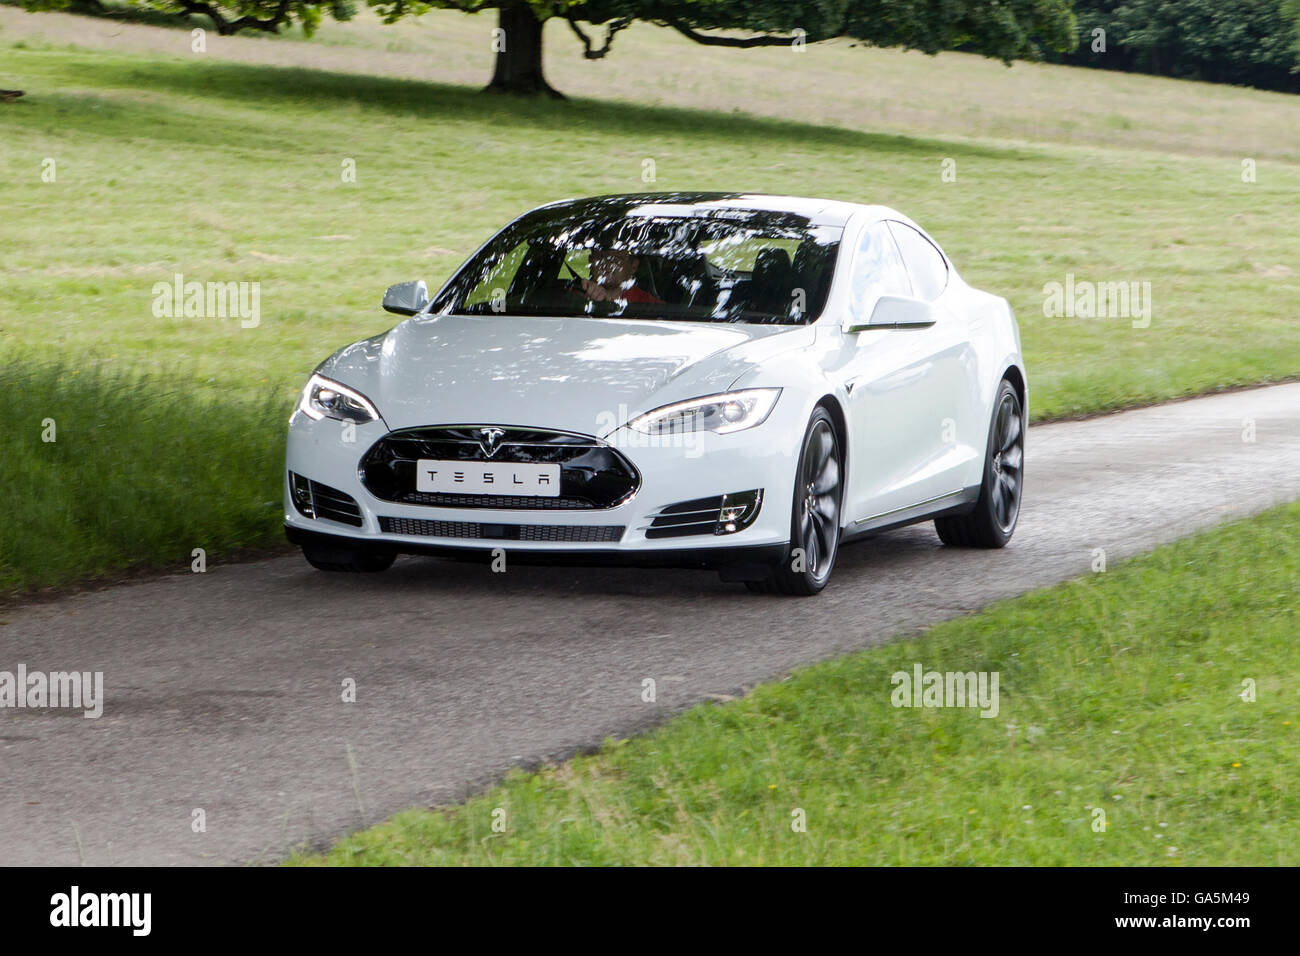 Electric Cars Design Stock Photos Electric Cars Design Stock